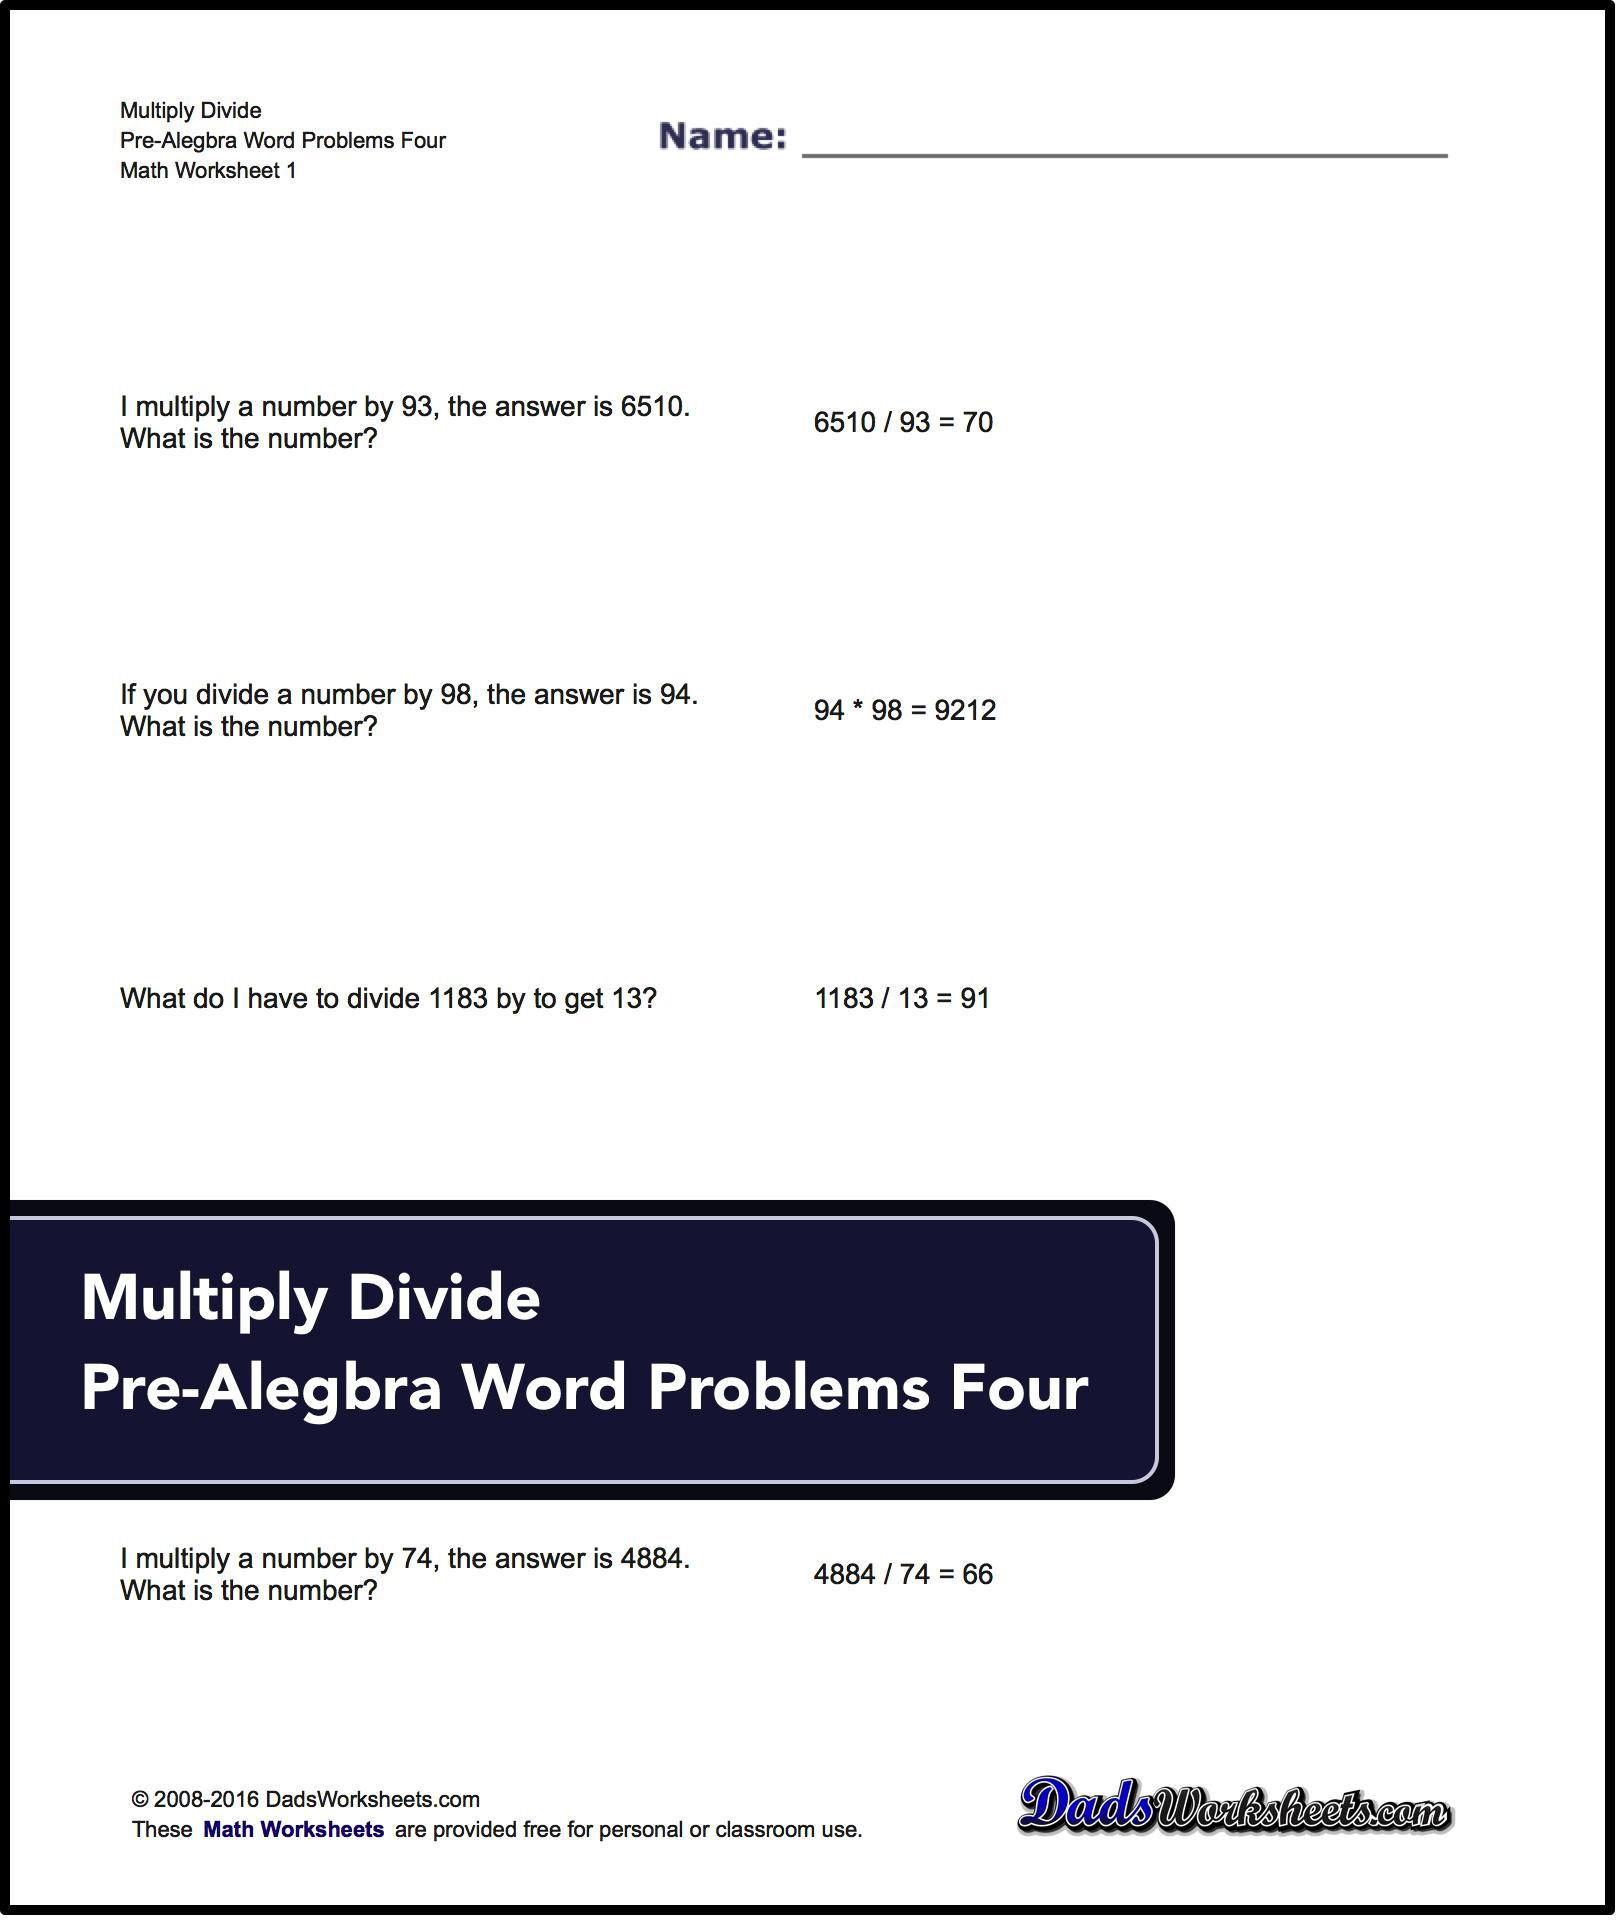 Multiply And Divide Pre Algebra Word Problems Multiply Divide Math Worksheets Freeresources Pre Word Problems Word Problem Worksheets Math Worksheets [ 1920 x 1620 Pixel ]